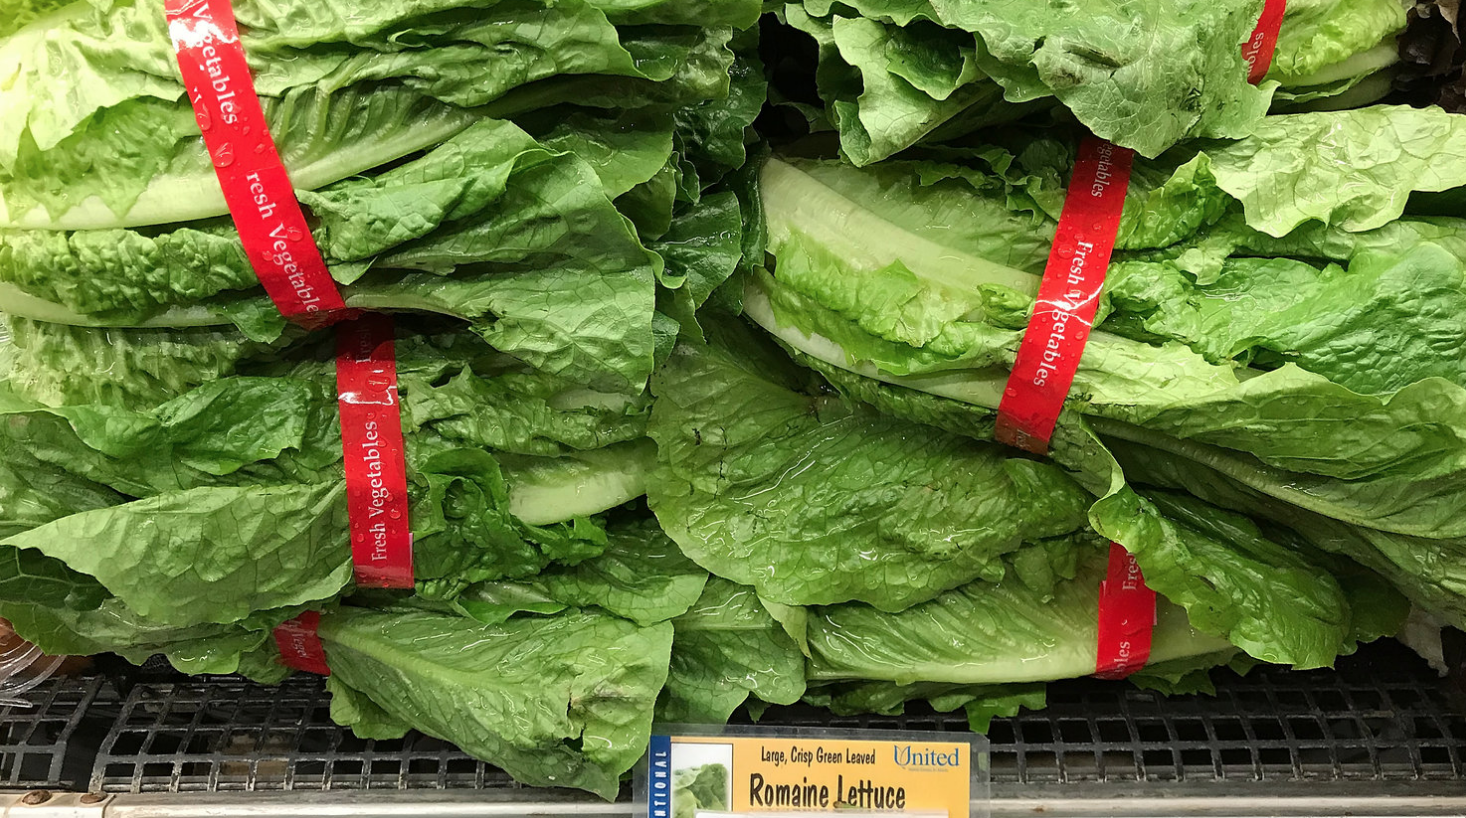 Watch what you eat-- Romaine lettuce is displayed on a shelf at a supermarket in California in November, during an E. coli outbreak traced to contaminated lettuce. The CDC says a new outbreak had made lettuce dangerous to eat, just in time for America's most food centric holiday.